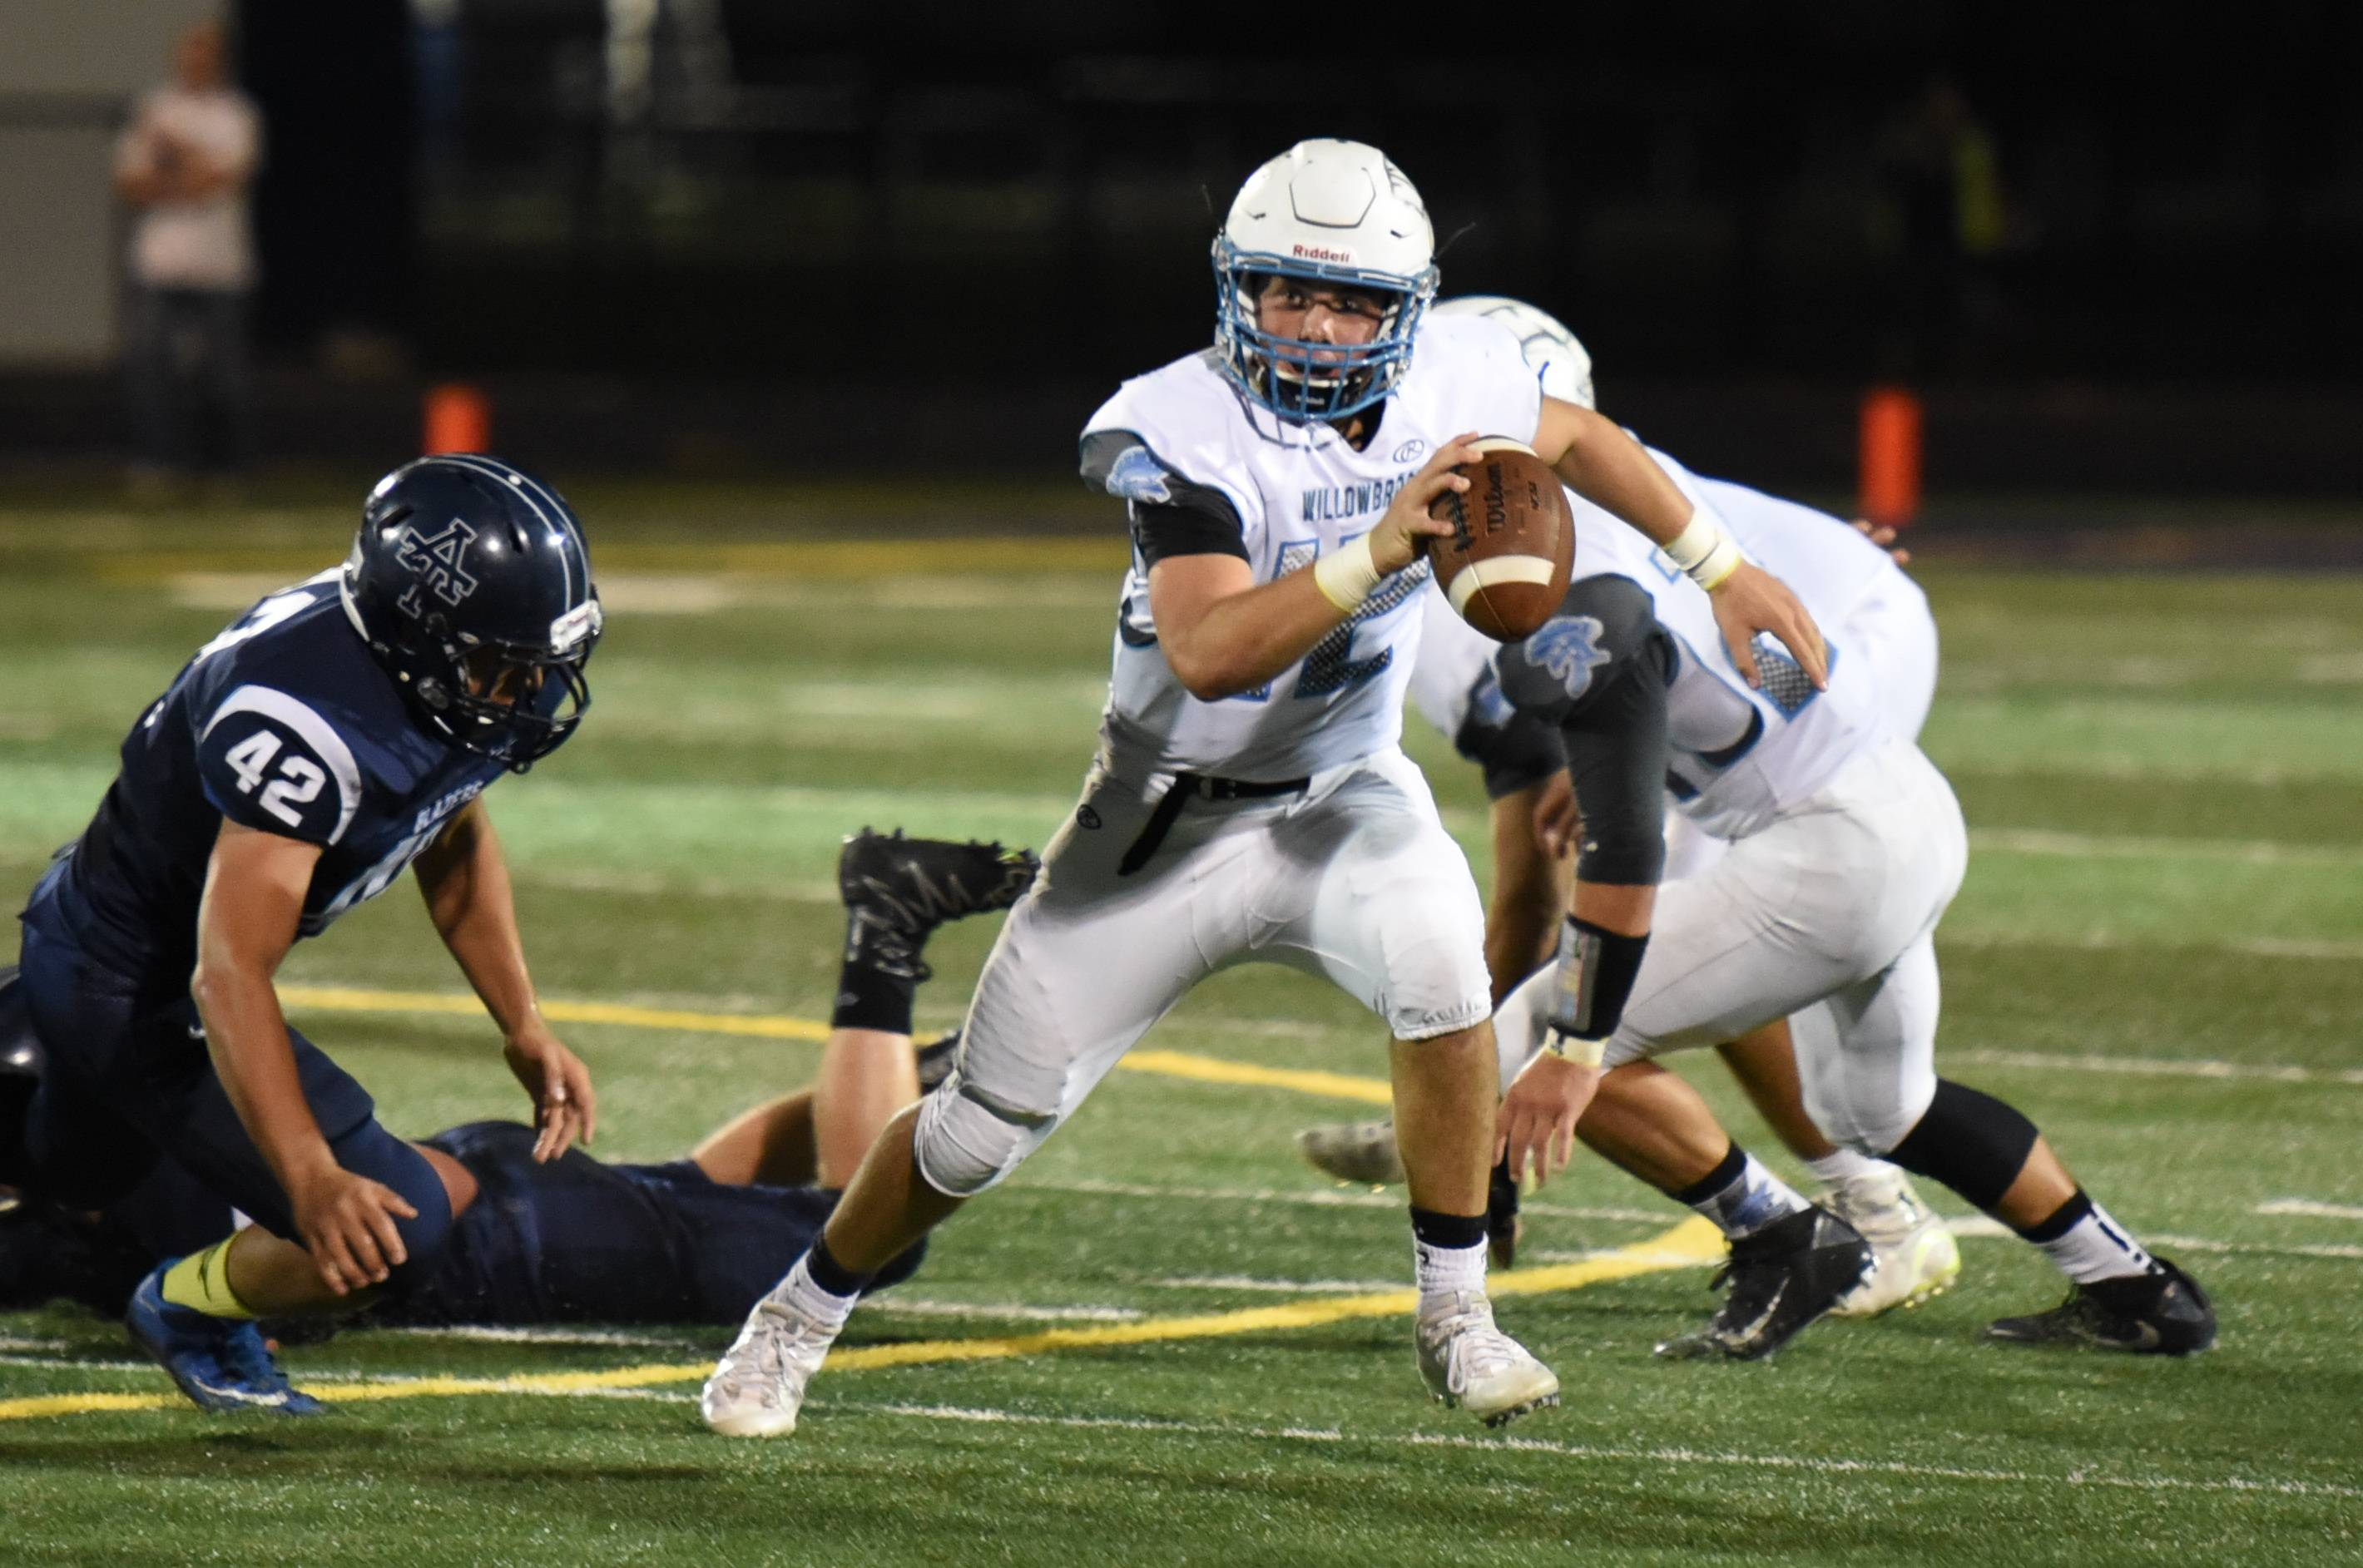 Willowbrook will head to Quincy on Friday for Saturday's Class 7A first-round playoff game.